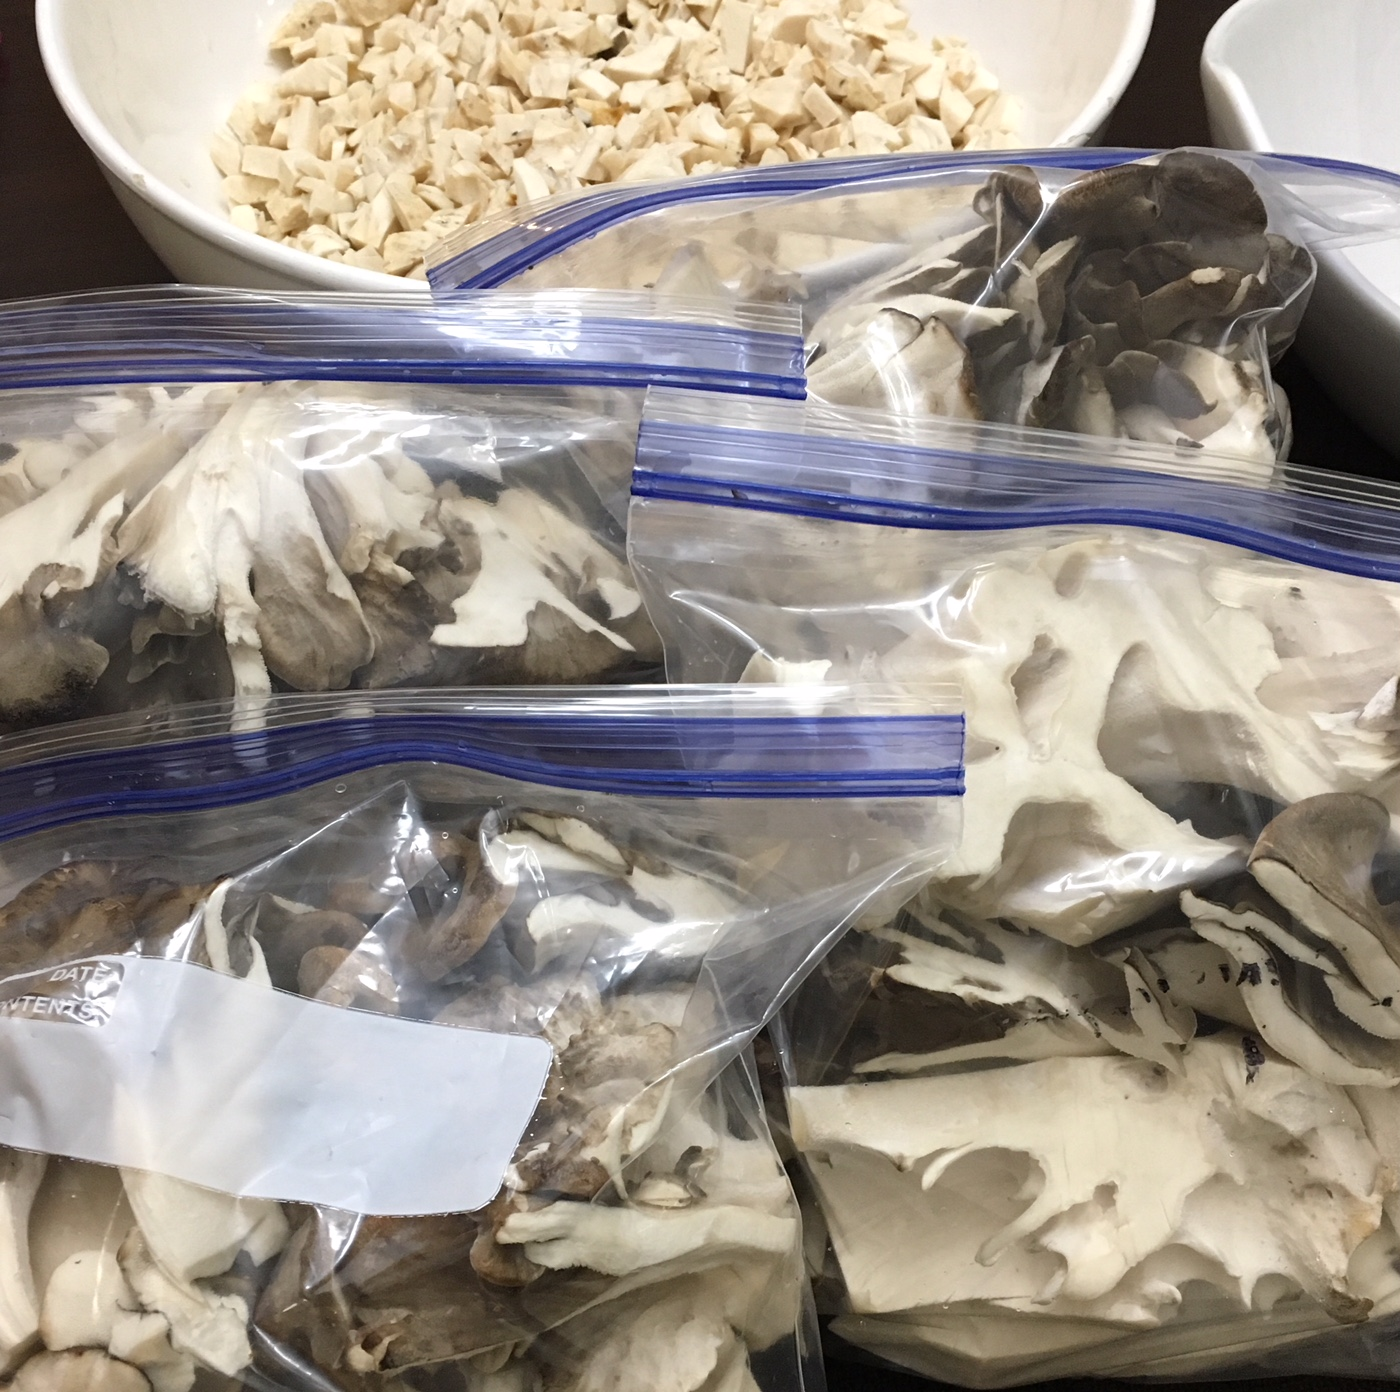 Chopped maitake mushrooms in freezer bags ready for longterm storage.